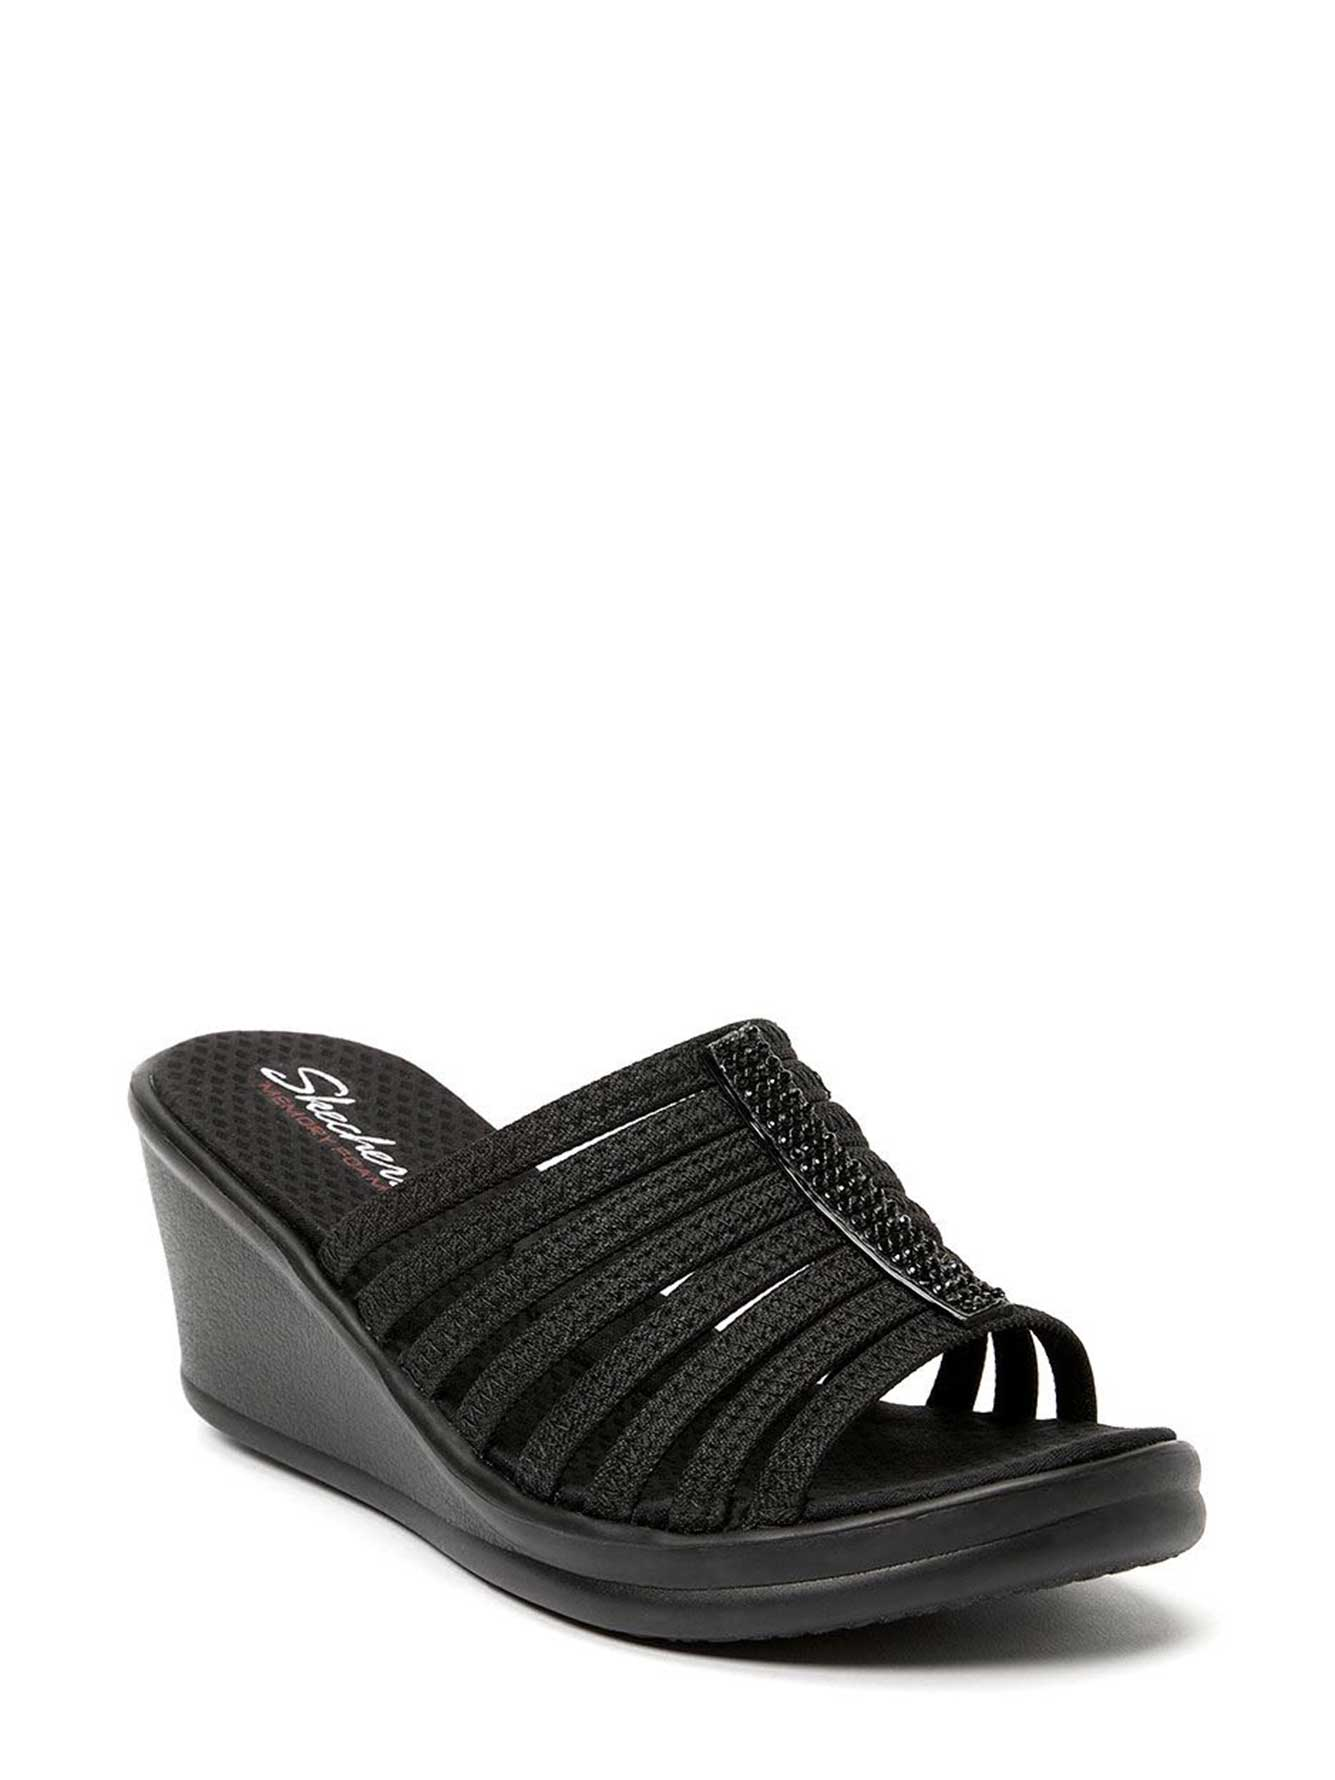 Wide-With Slide Sandals with Rhinestones - Skechers